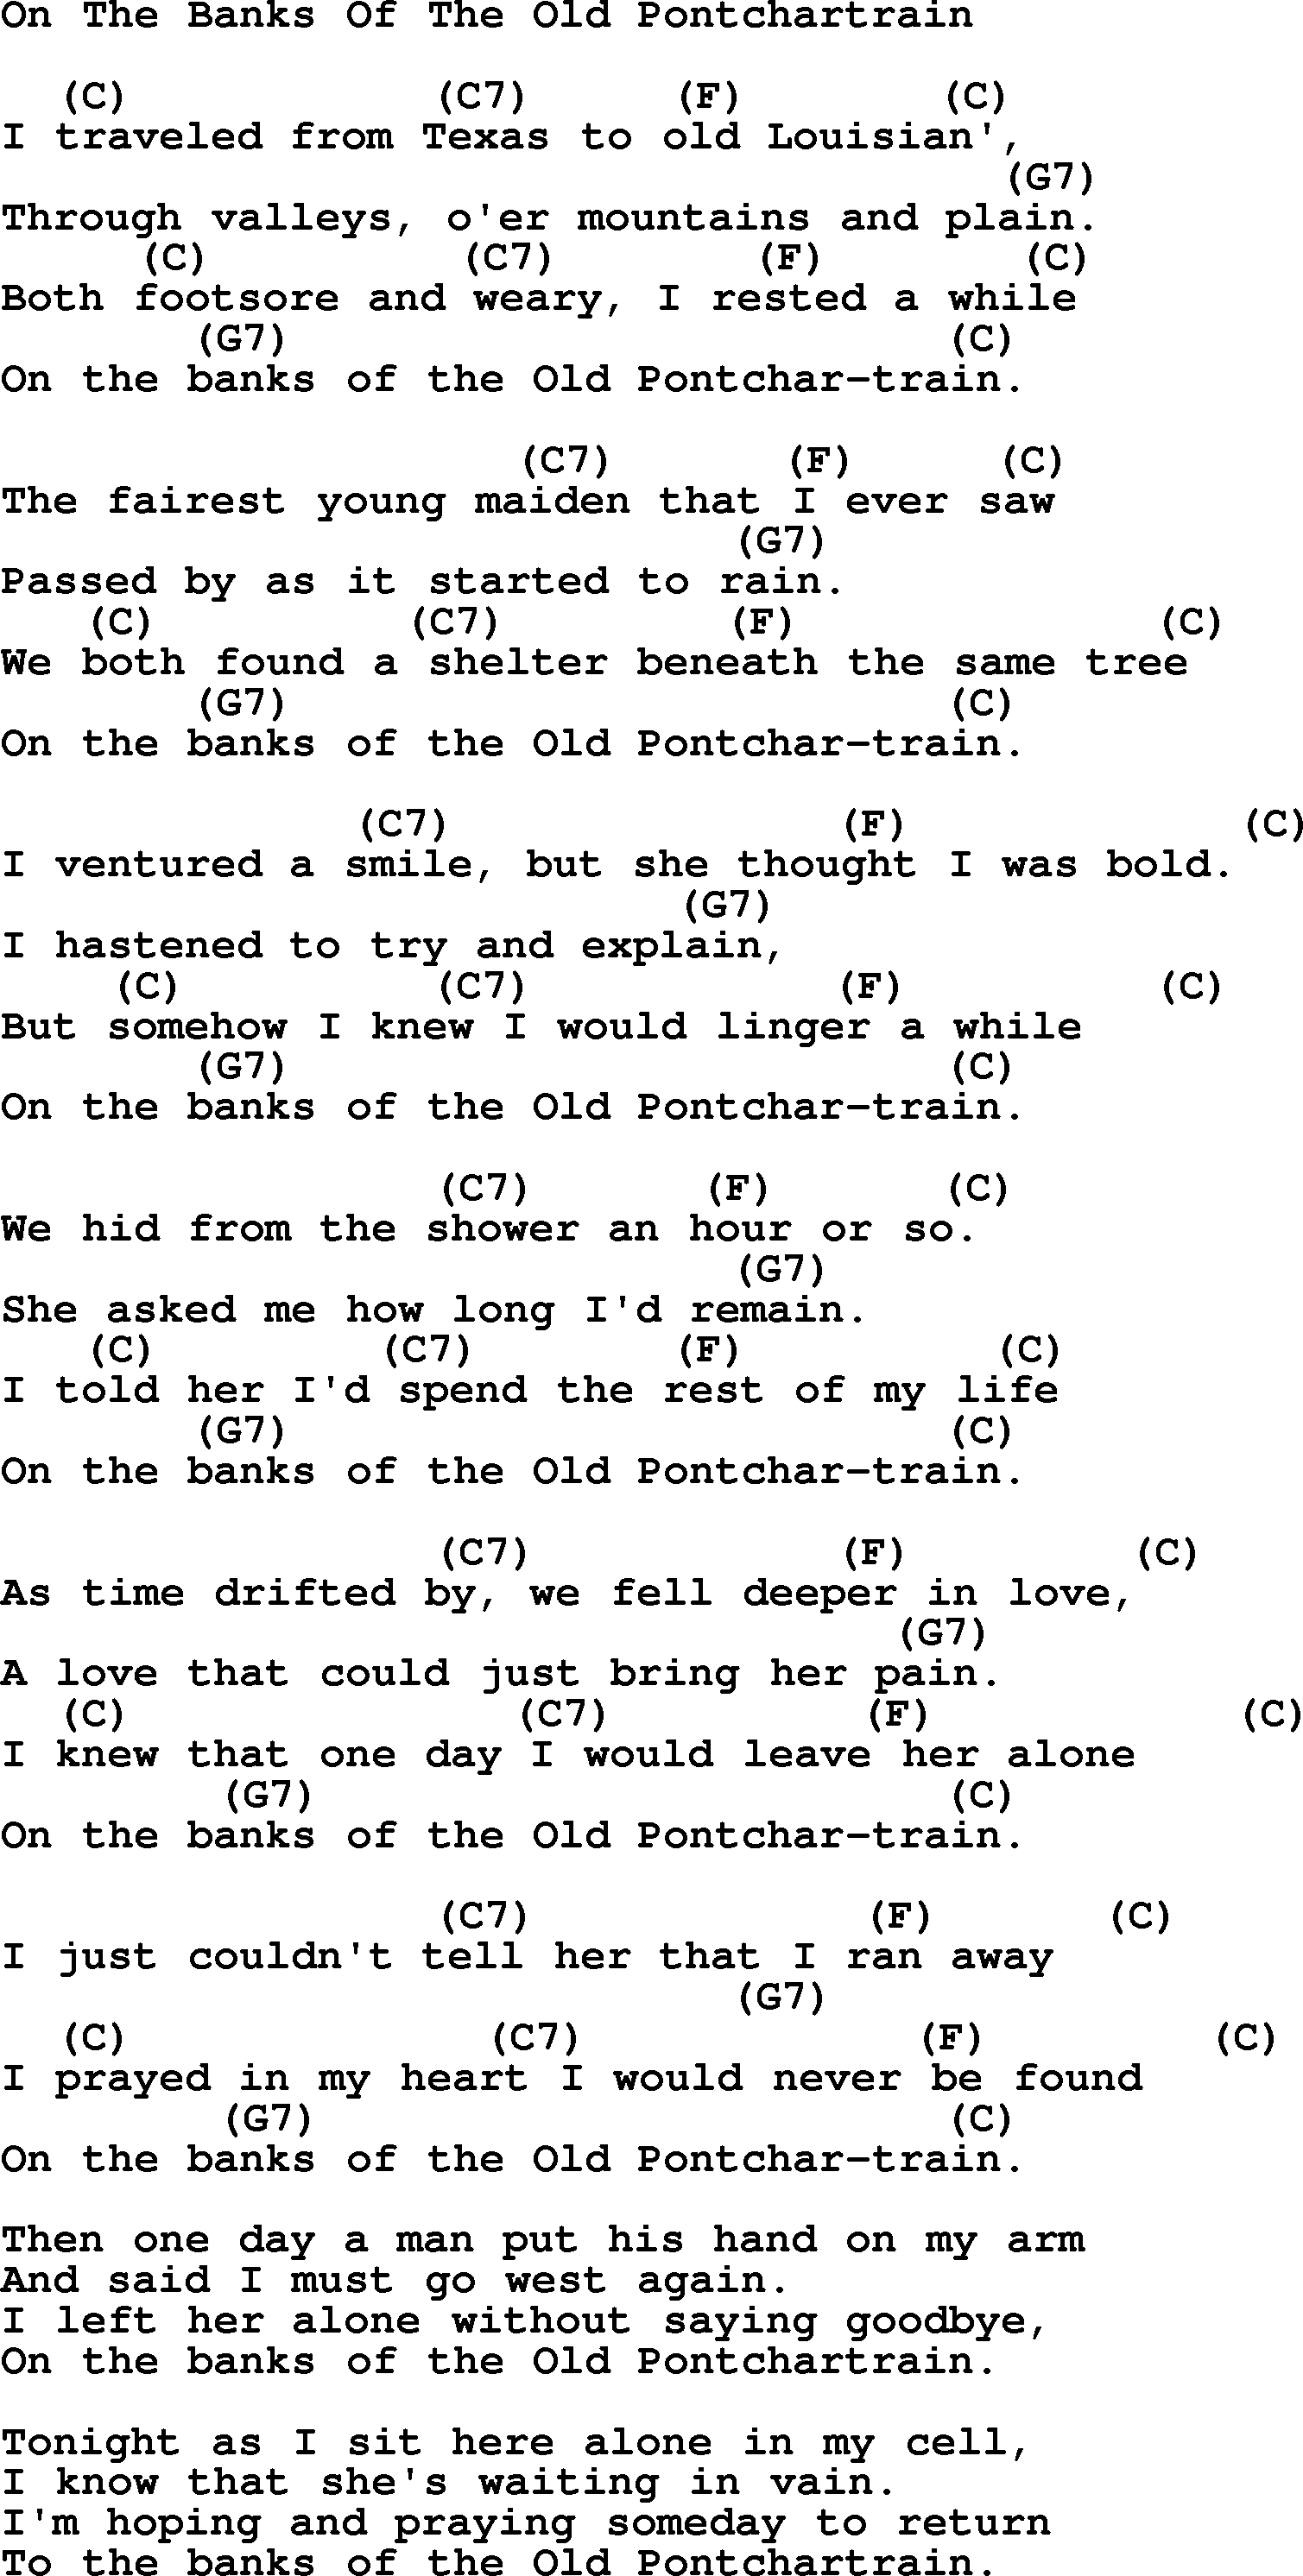 Hank Williams Song On The Banks Of The Old Pontchartrain Lyrics